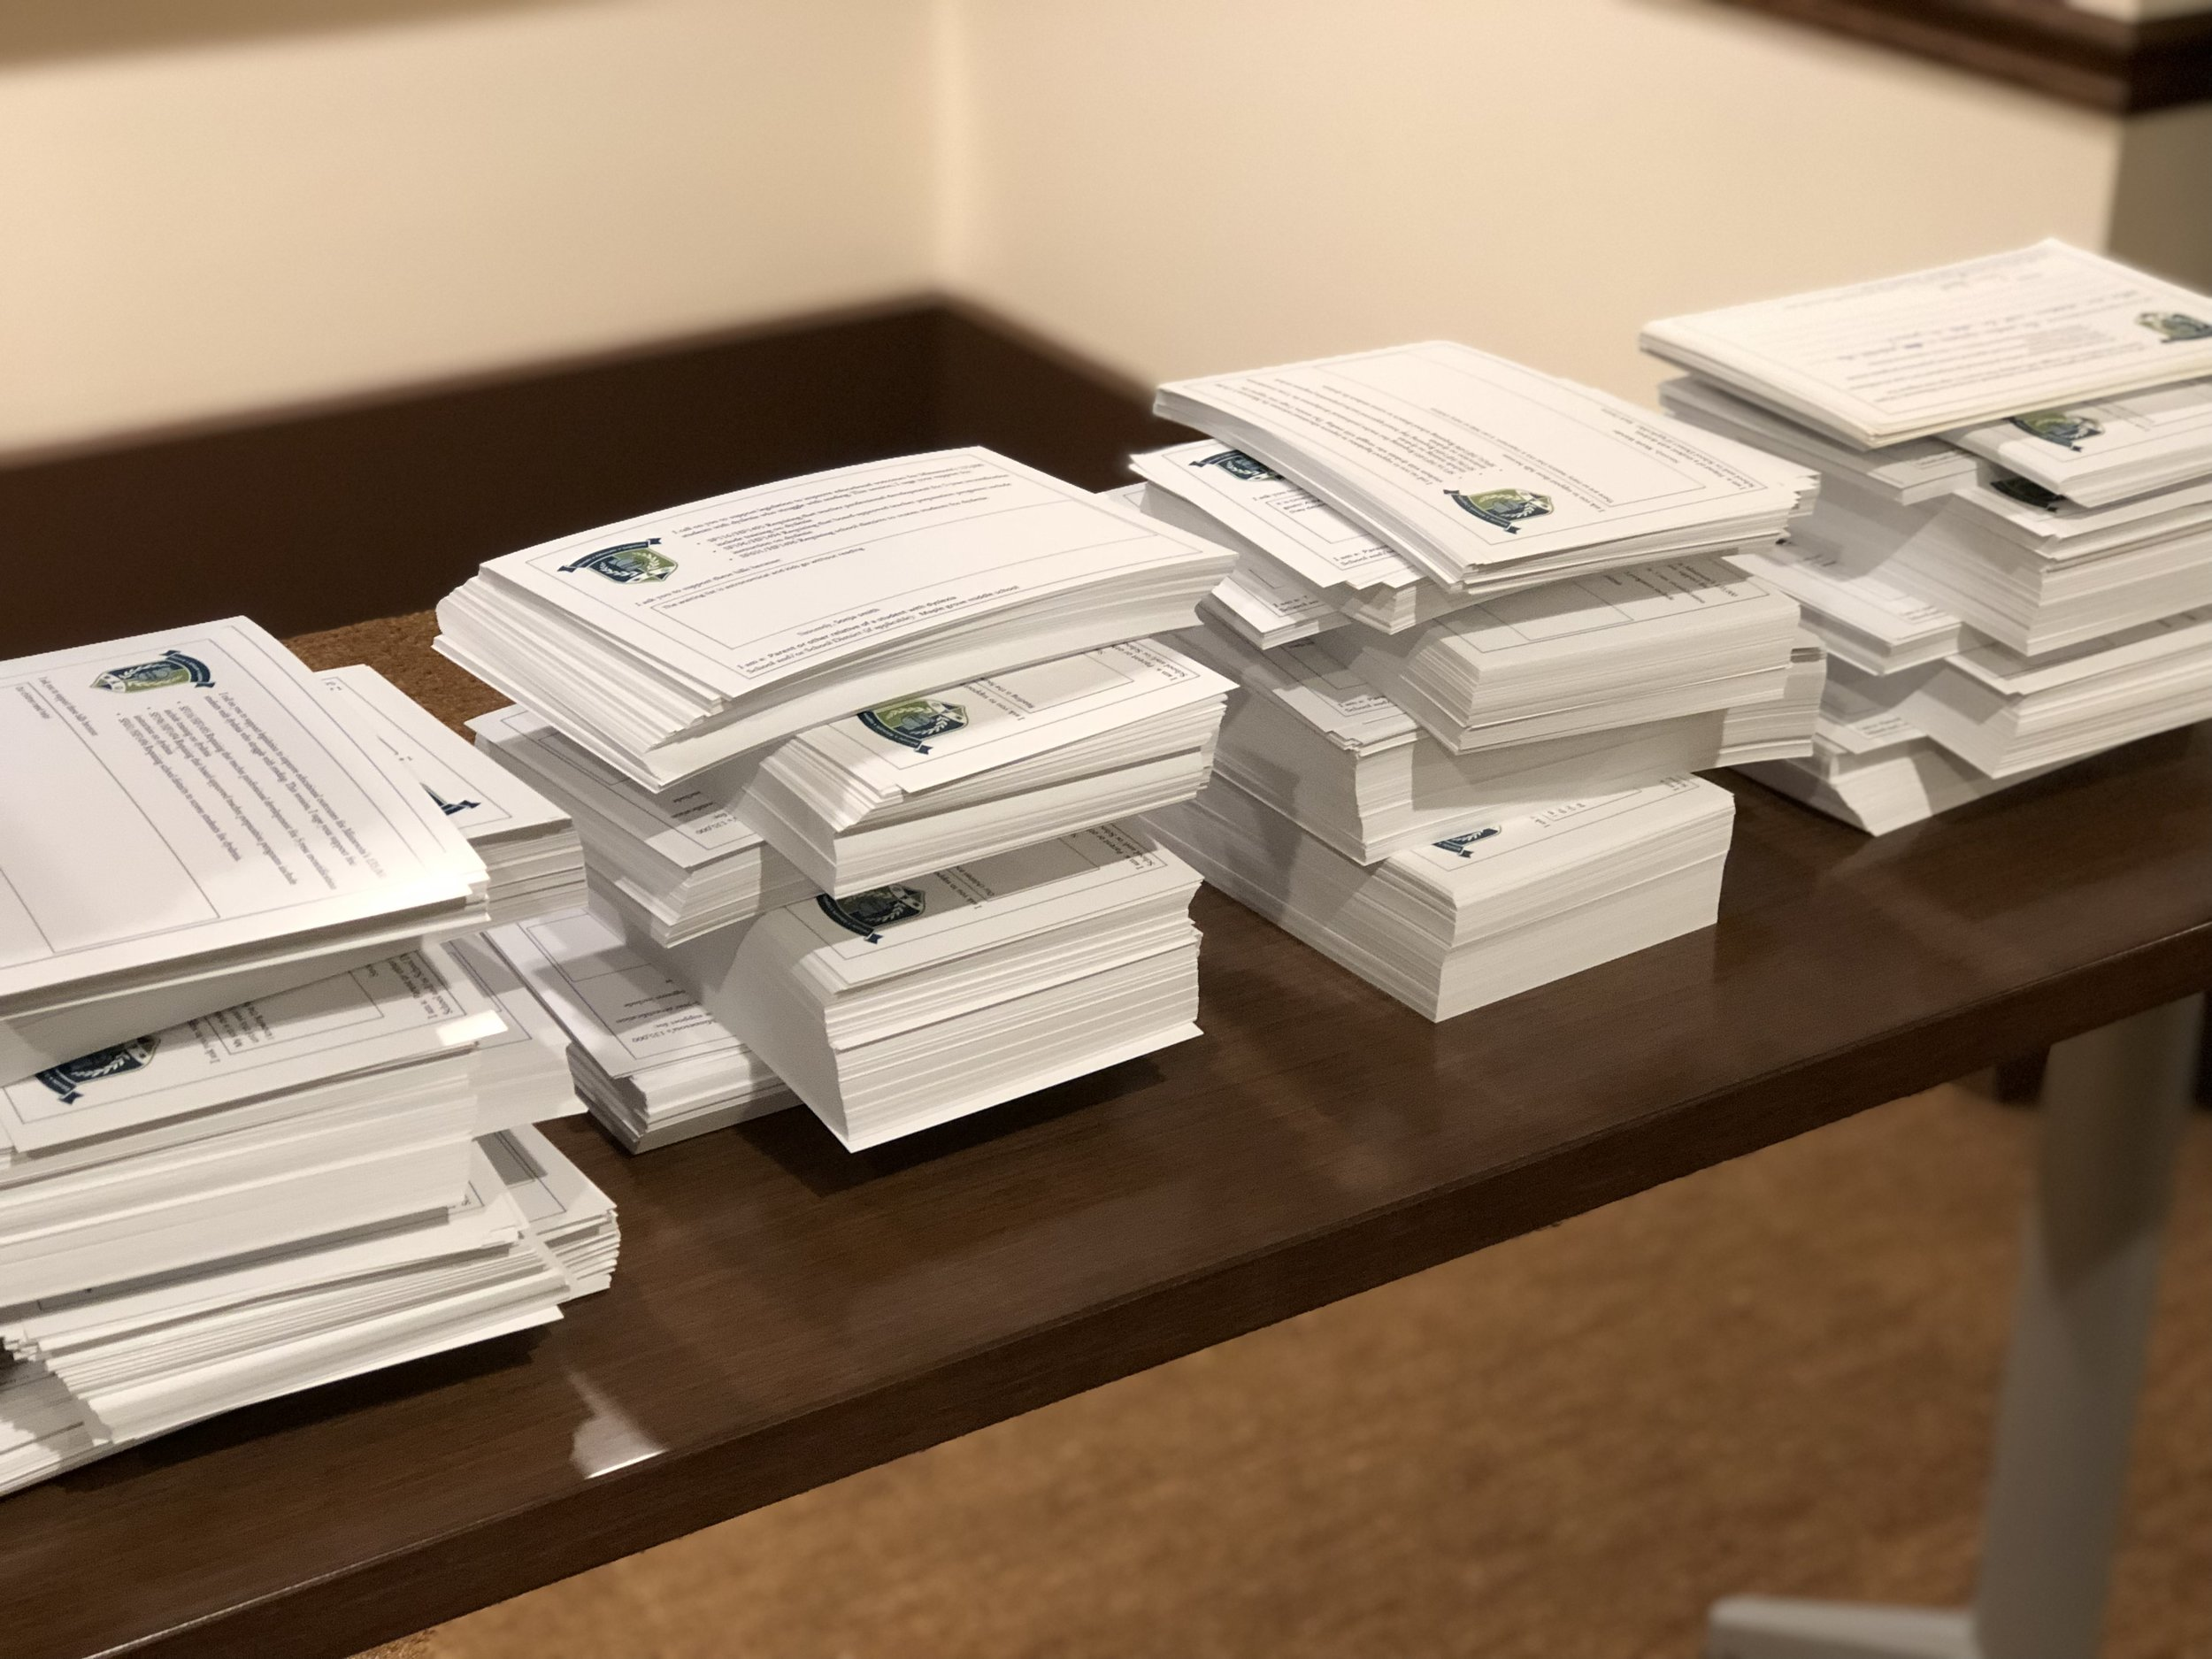 2500+ petitions shared with legislative leaders